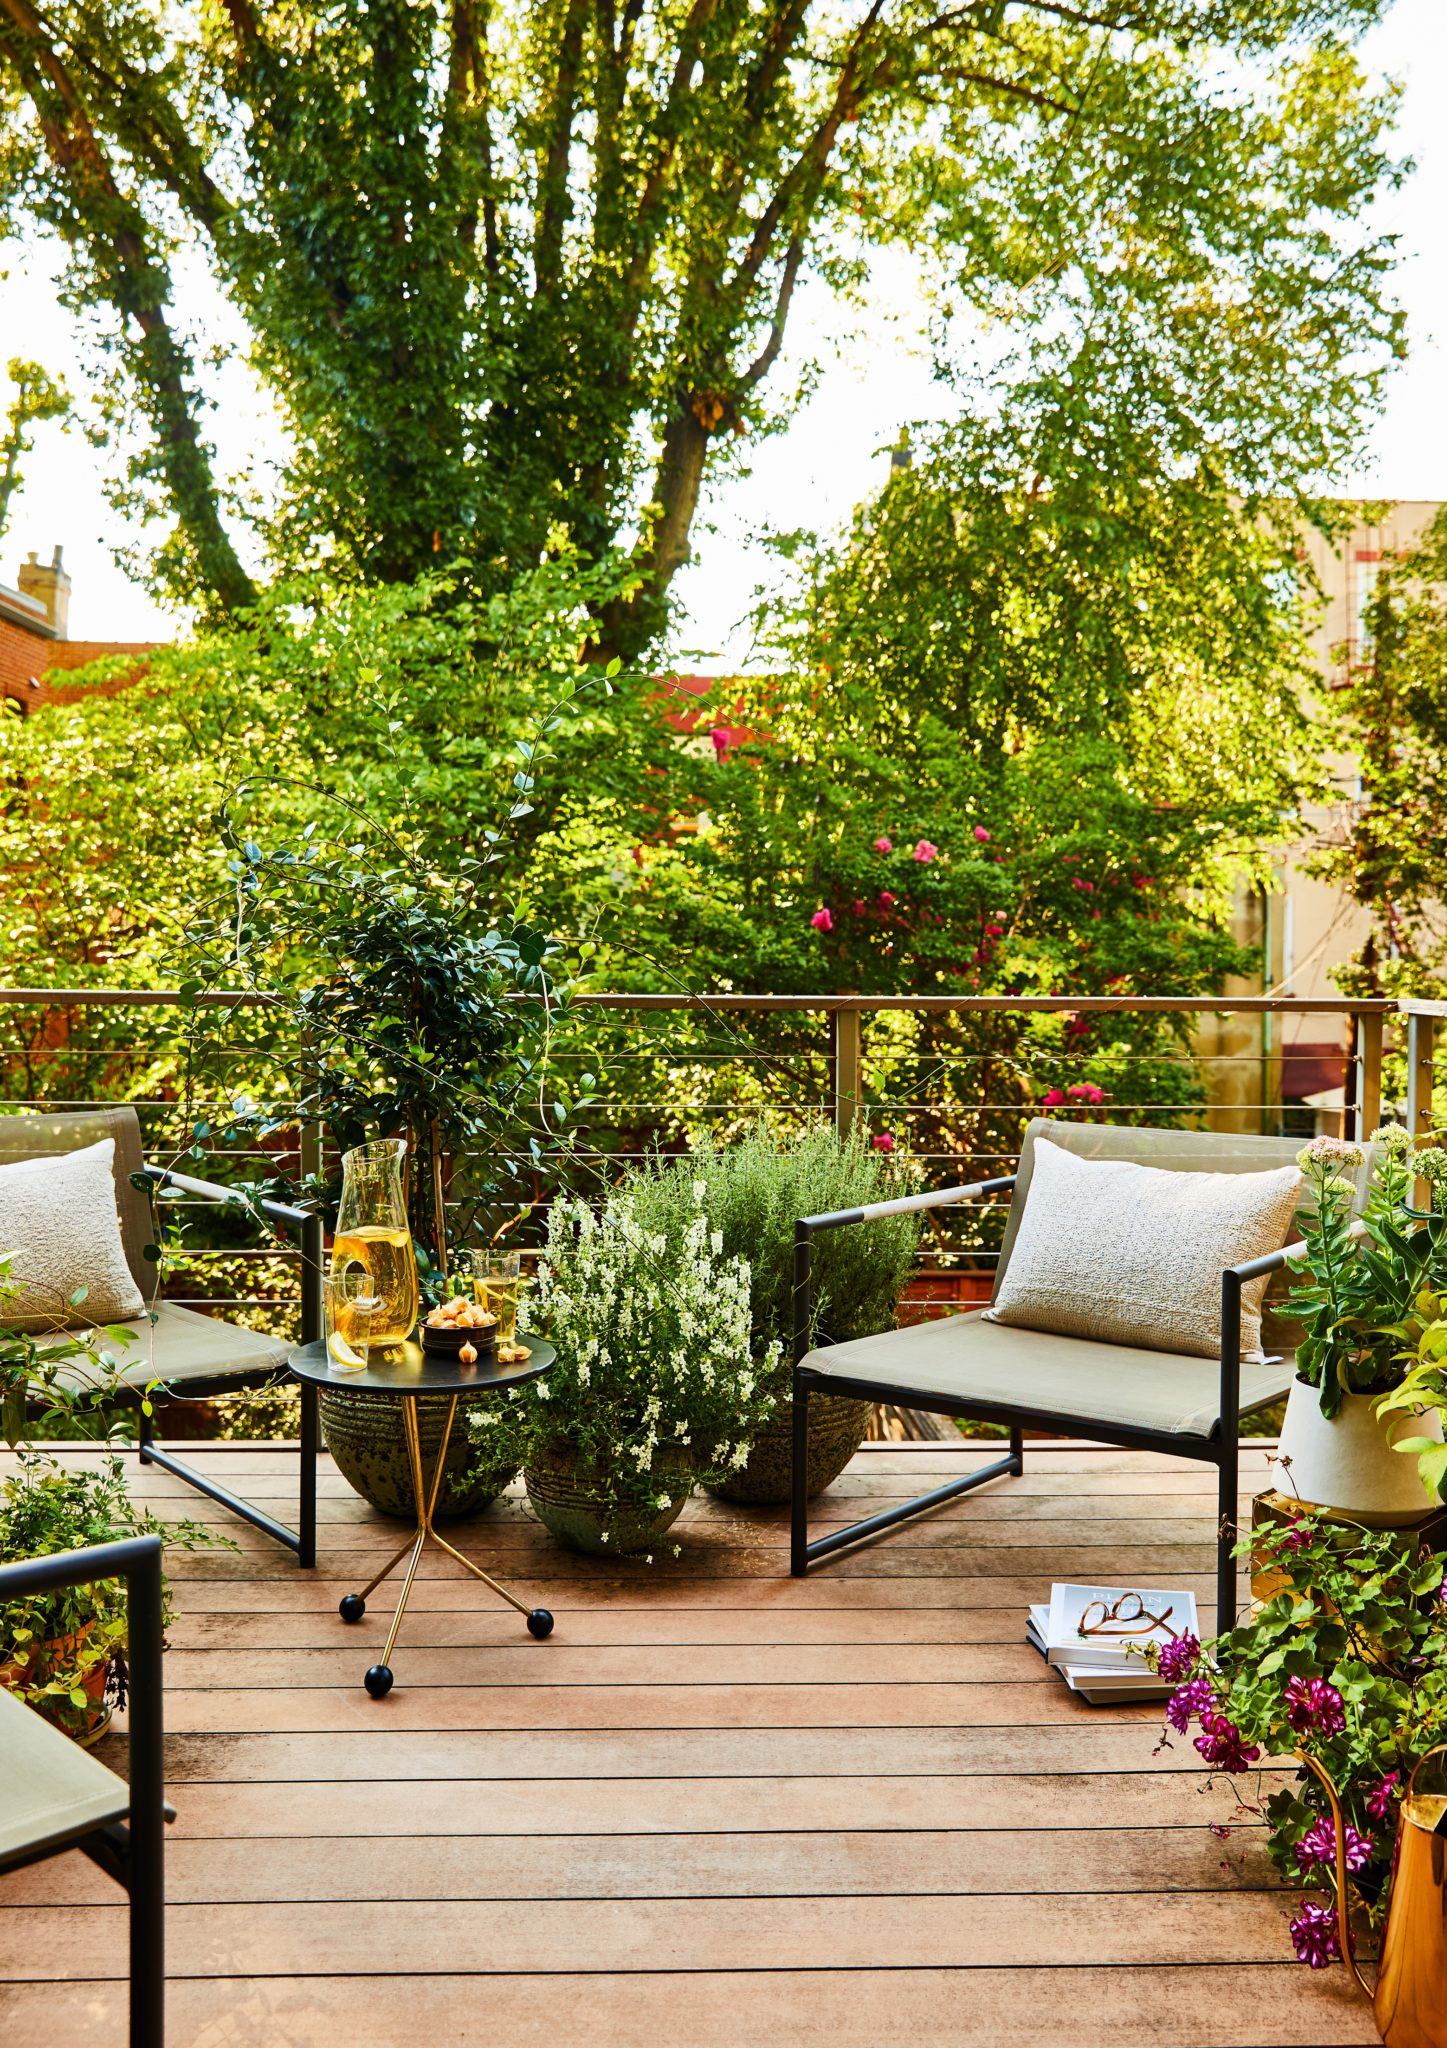 Outdoors, the designer decorated the existing balcony space overlooking the neighborhood with Wayfair chairs, a vintage side table, and custom pillows, available atJ. PATRYCE DESIGN.